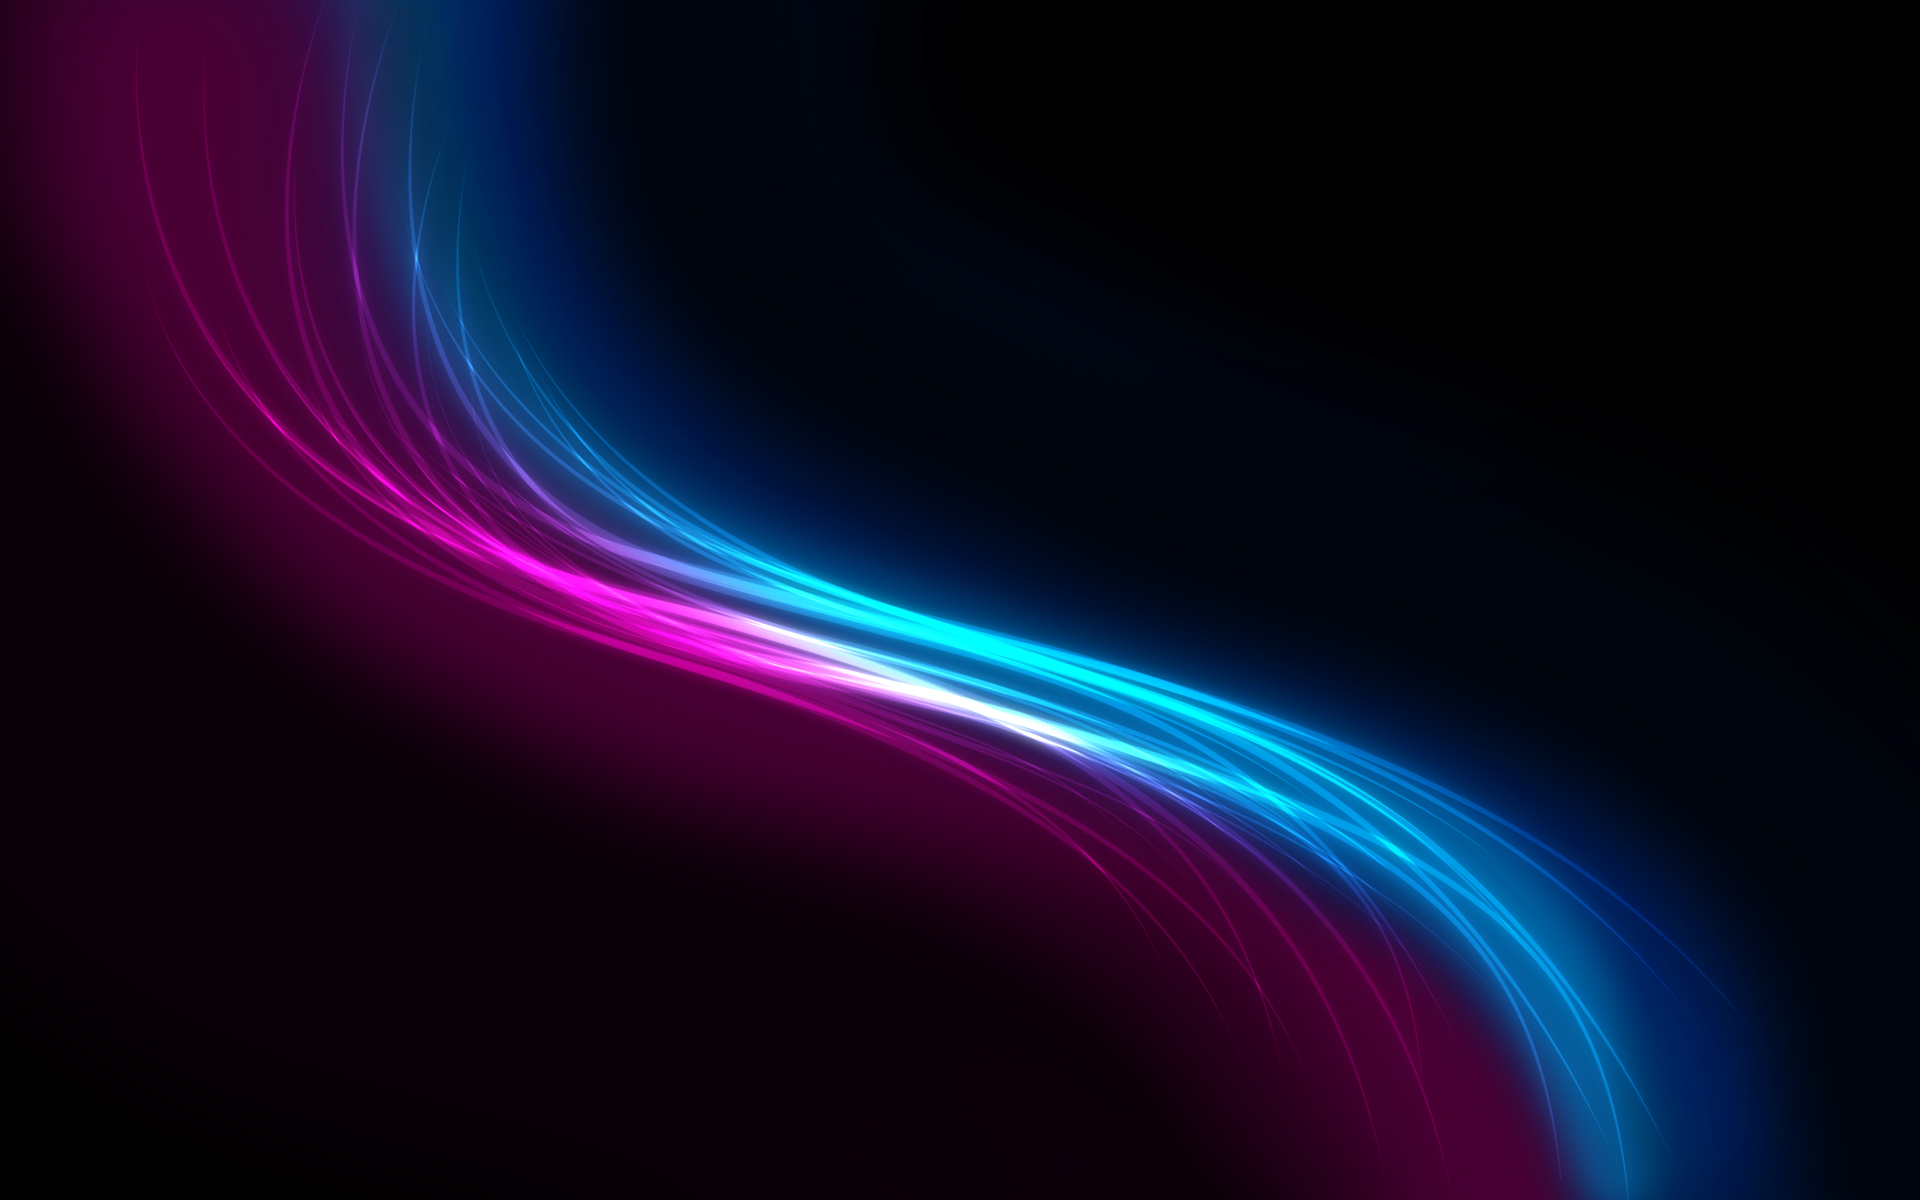 Dark Colors Abstract 447.97 Kb